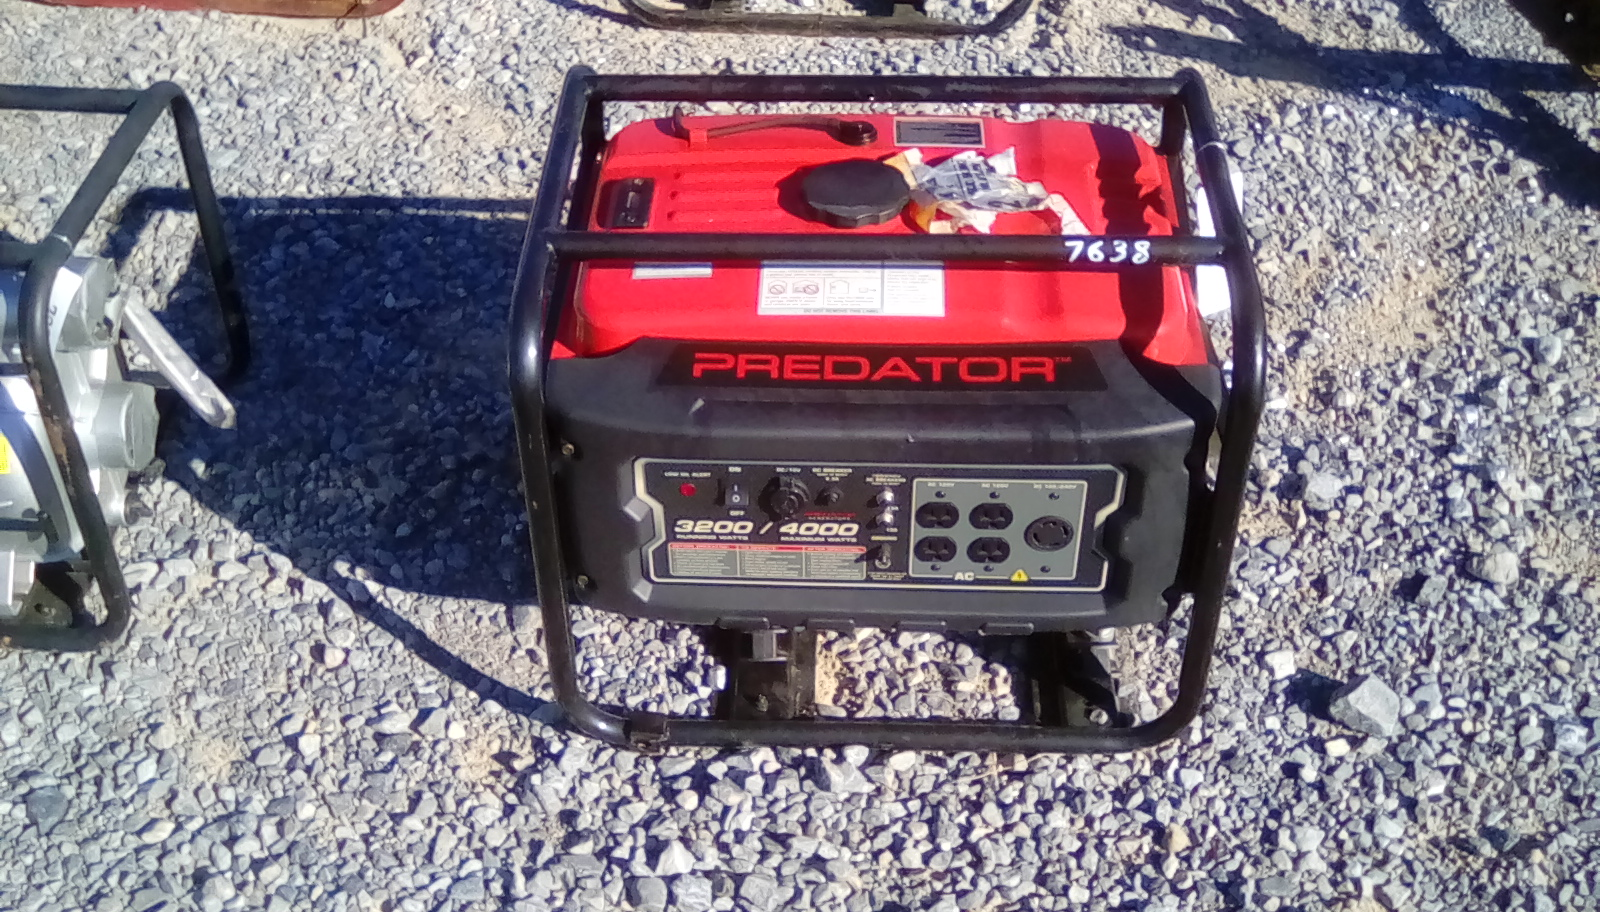 PREDATOR 4000 GAS POWERED GENERATOR Image